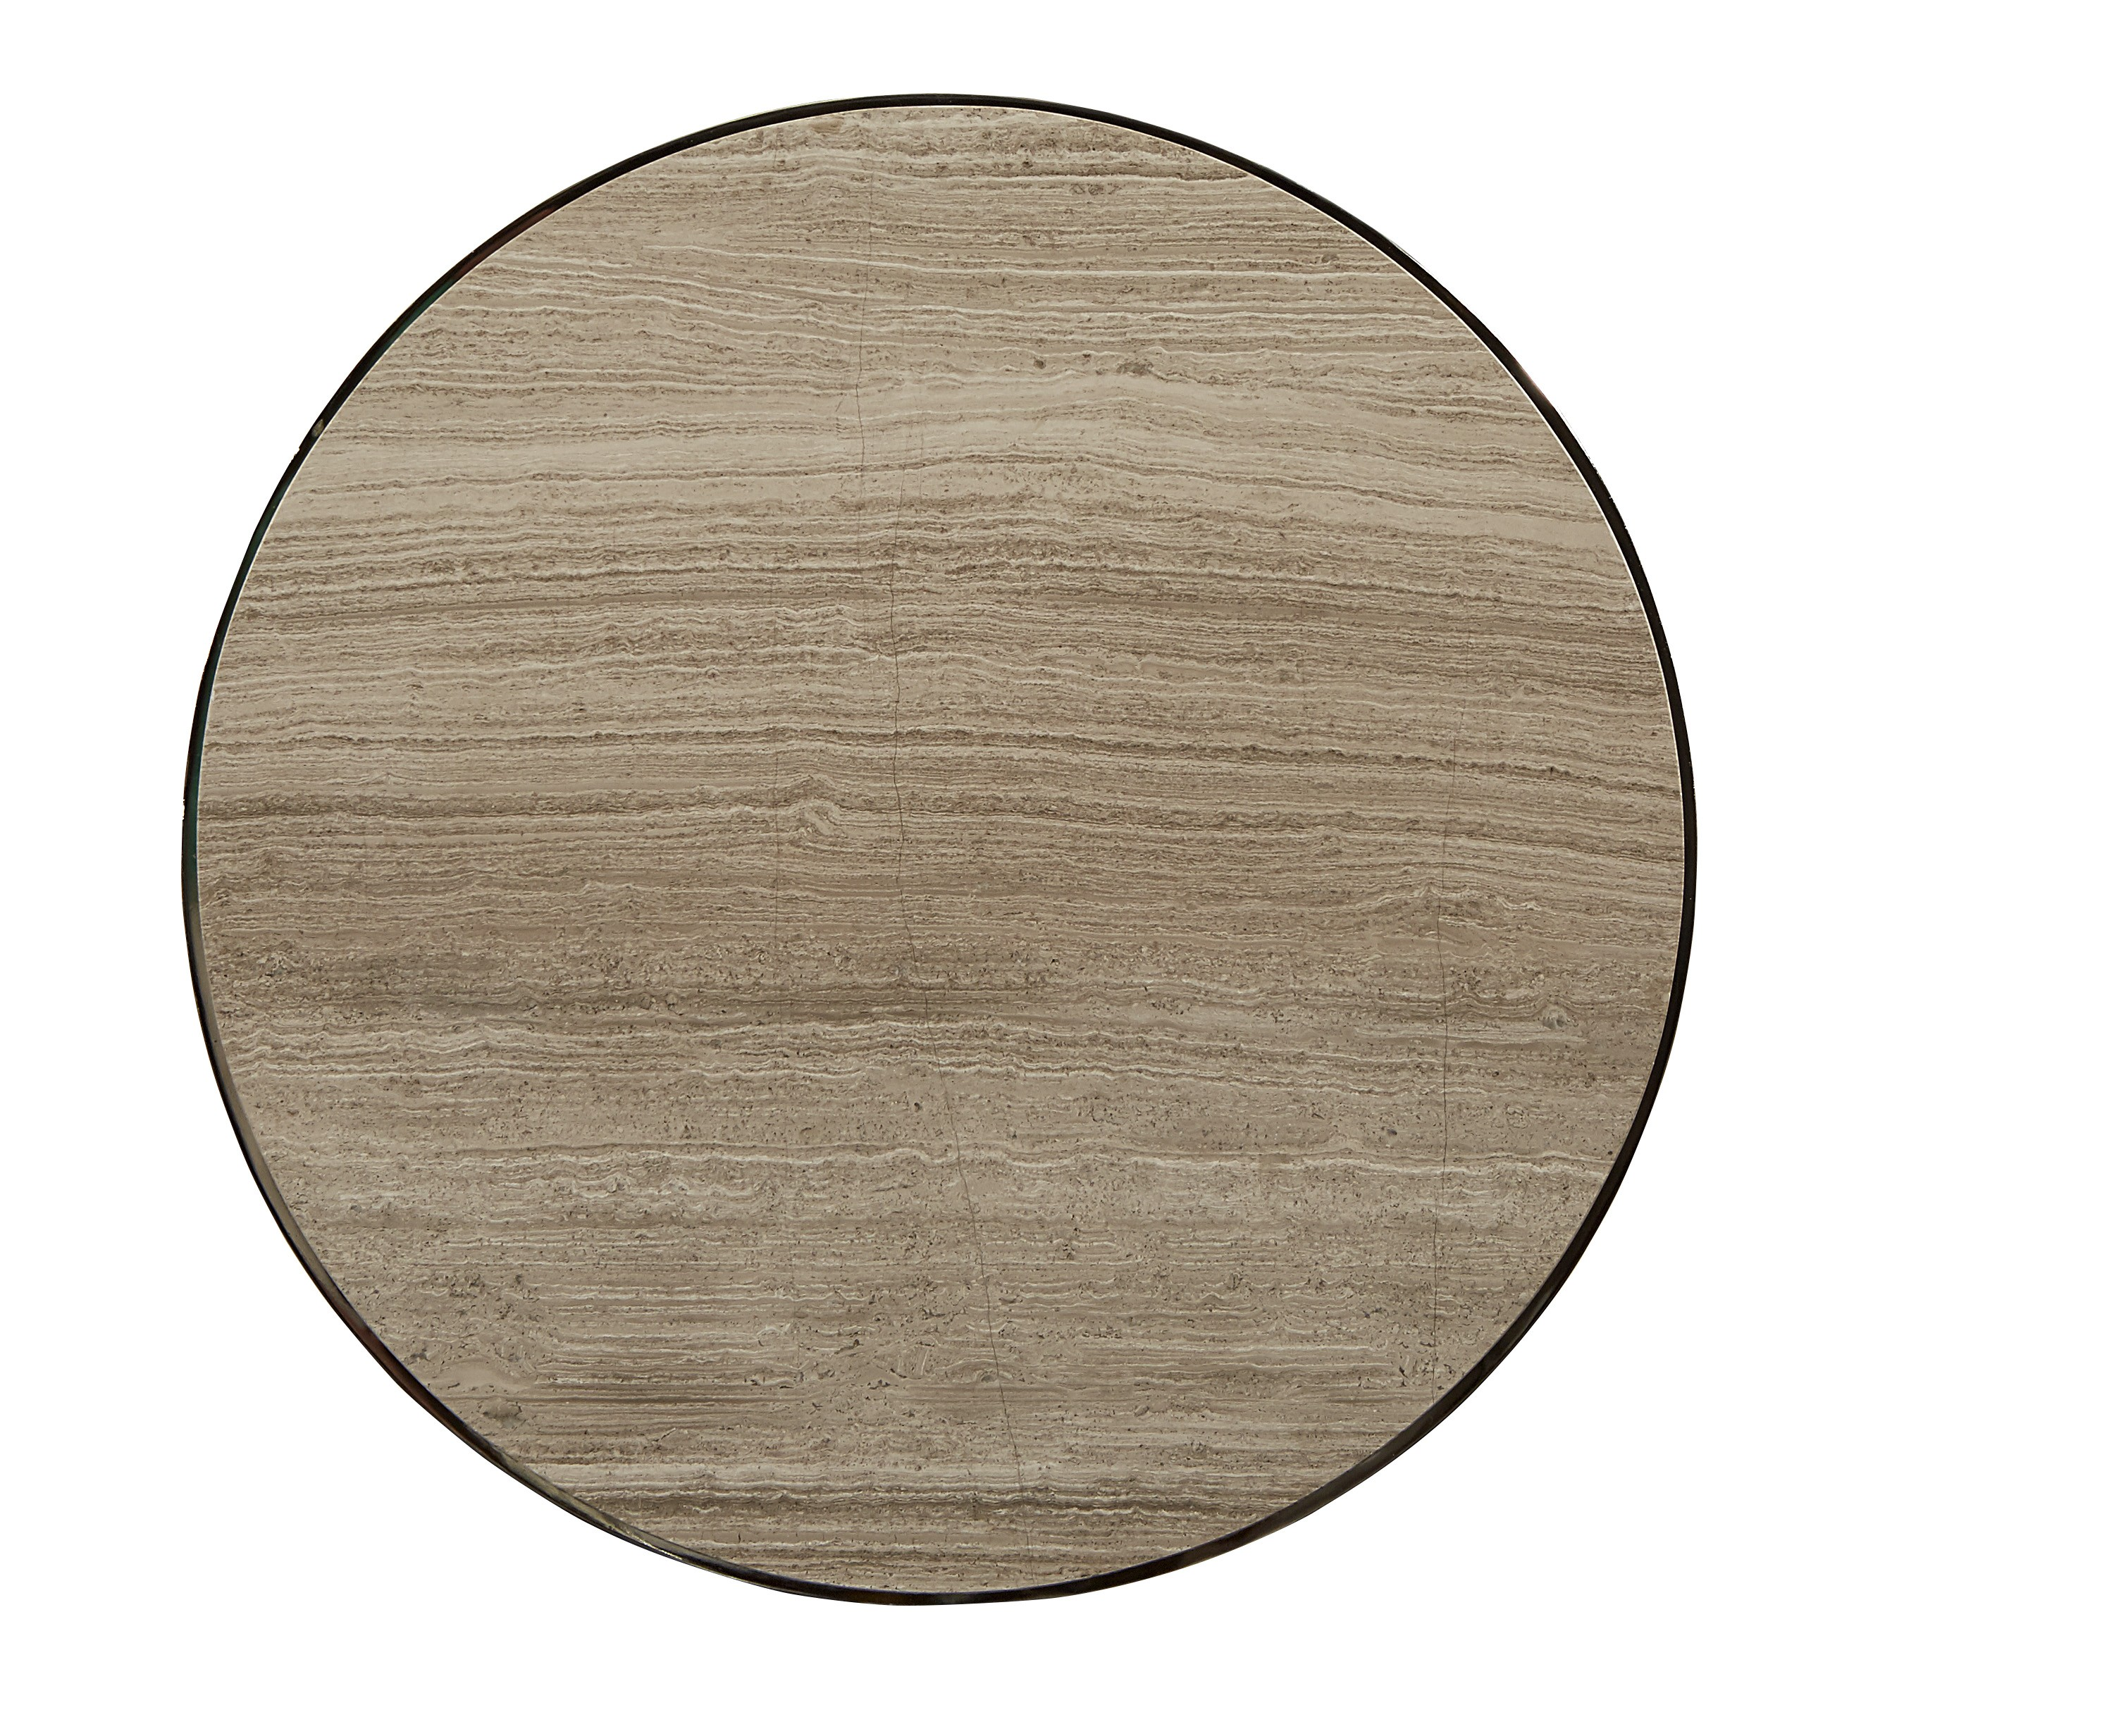 Morrissey Yeats Round Lamp Table Top view